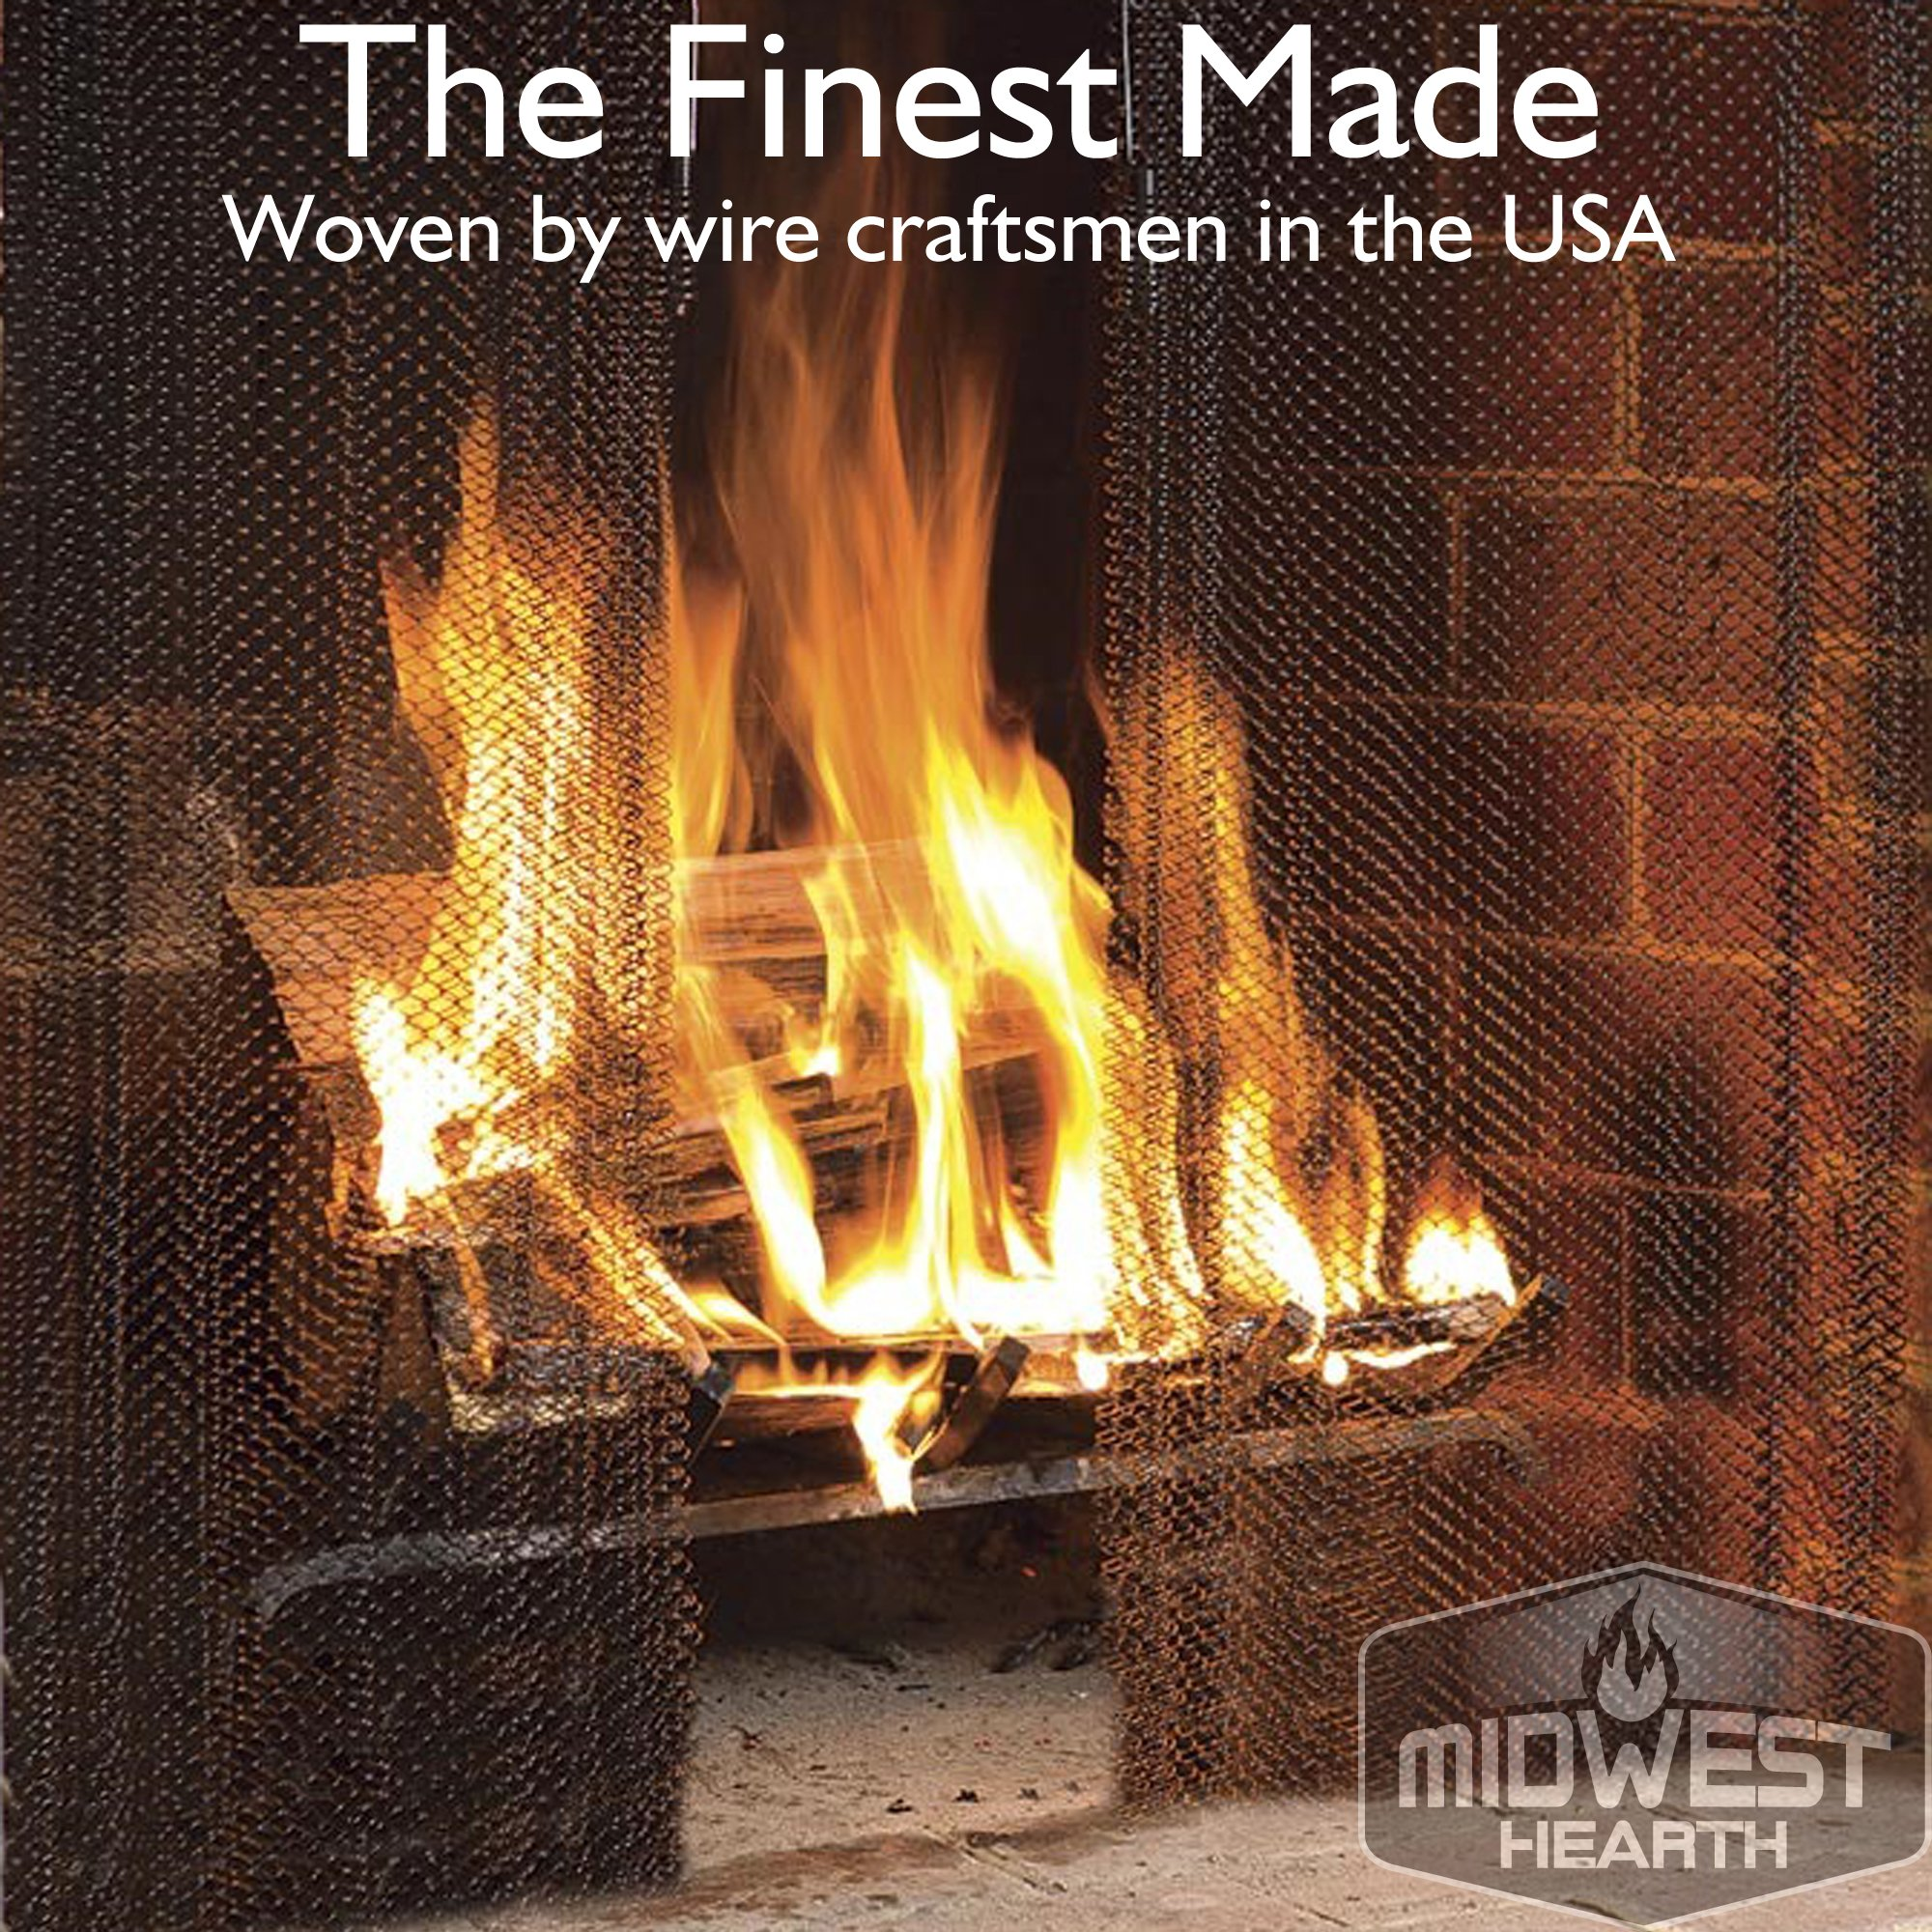 Midwest Hearth Fireplace Screen Mesh Curtain. 2 Panels Each 24'' Wide. Includes Screen Pulls. Made in USA (26'' Tall - Stainless Steel)